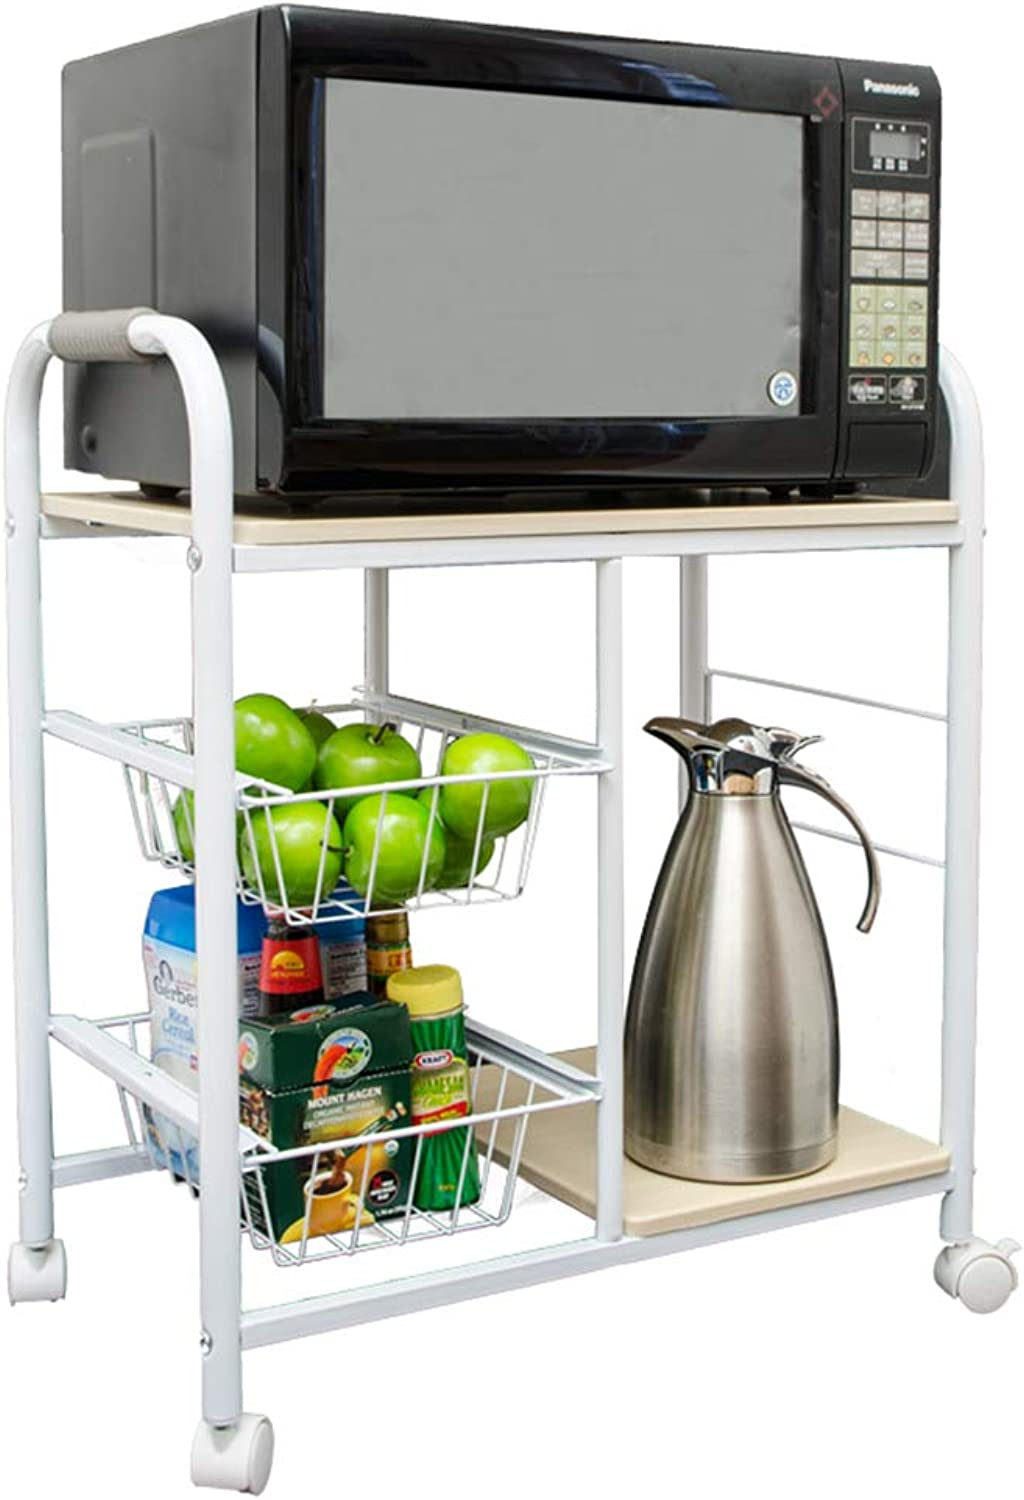 Kitchen Island Dining Cart Basket Rolling Microwave Storage Shelves Organizer Multifunction Utility Trolley, for Dining Rooms Kitchens and Living Rooms (White)